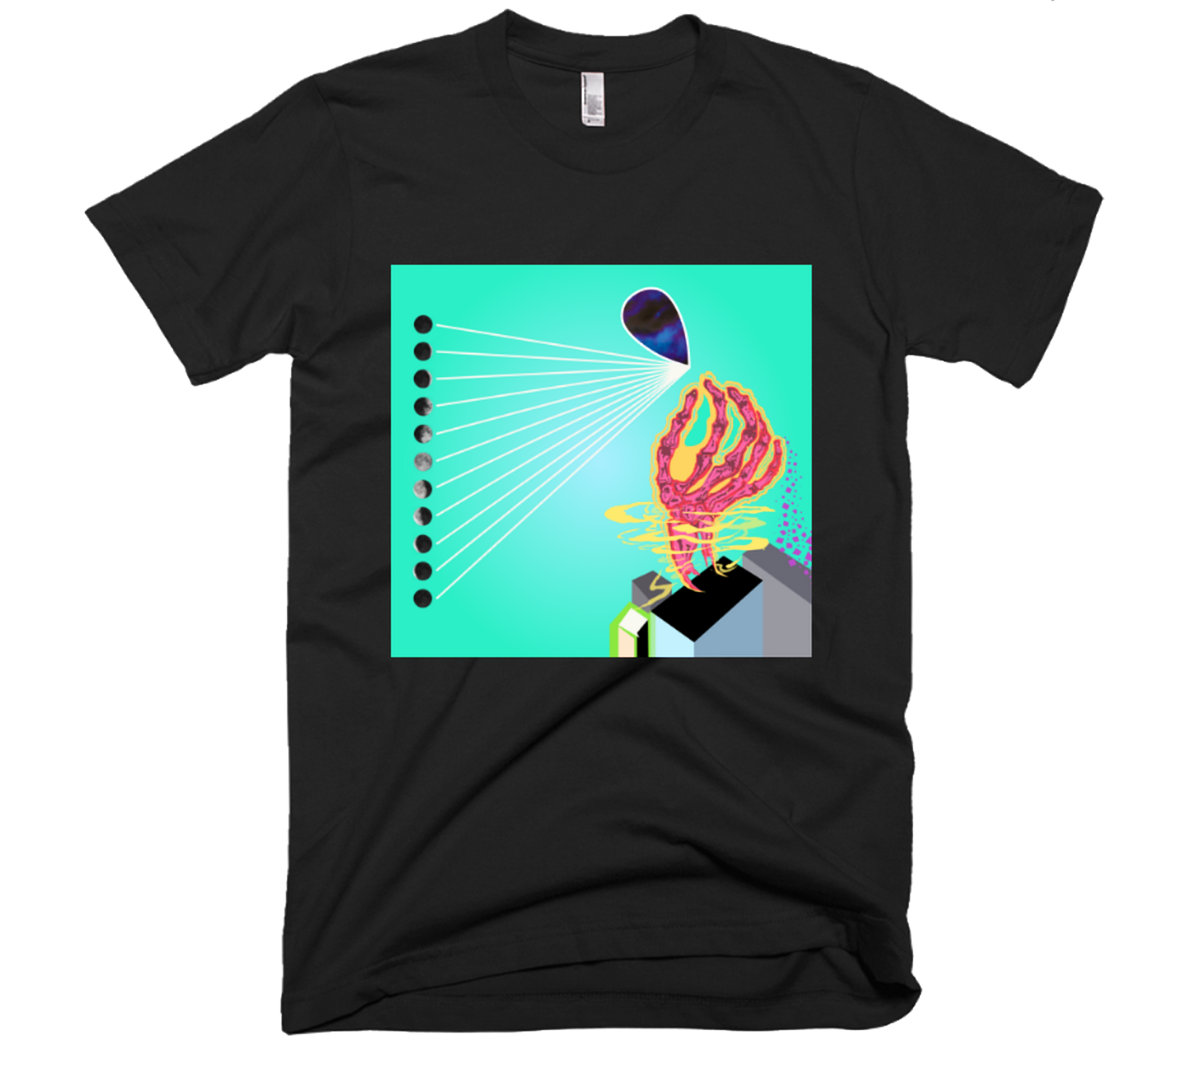 The Dreamland Fire Flow Design Unisex T Shirt The Dreamland Fire